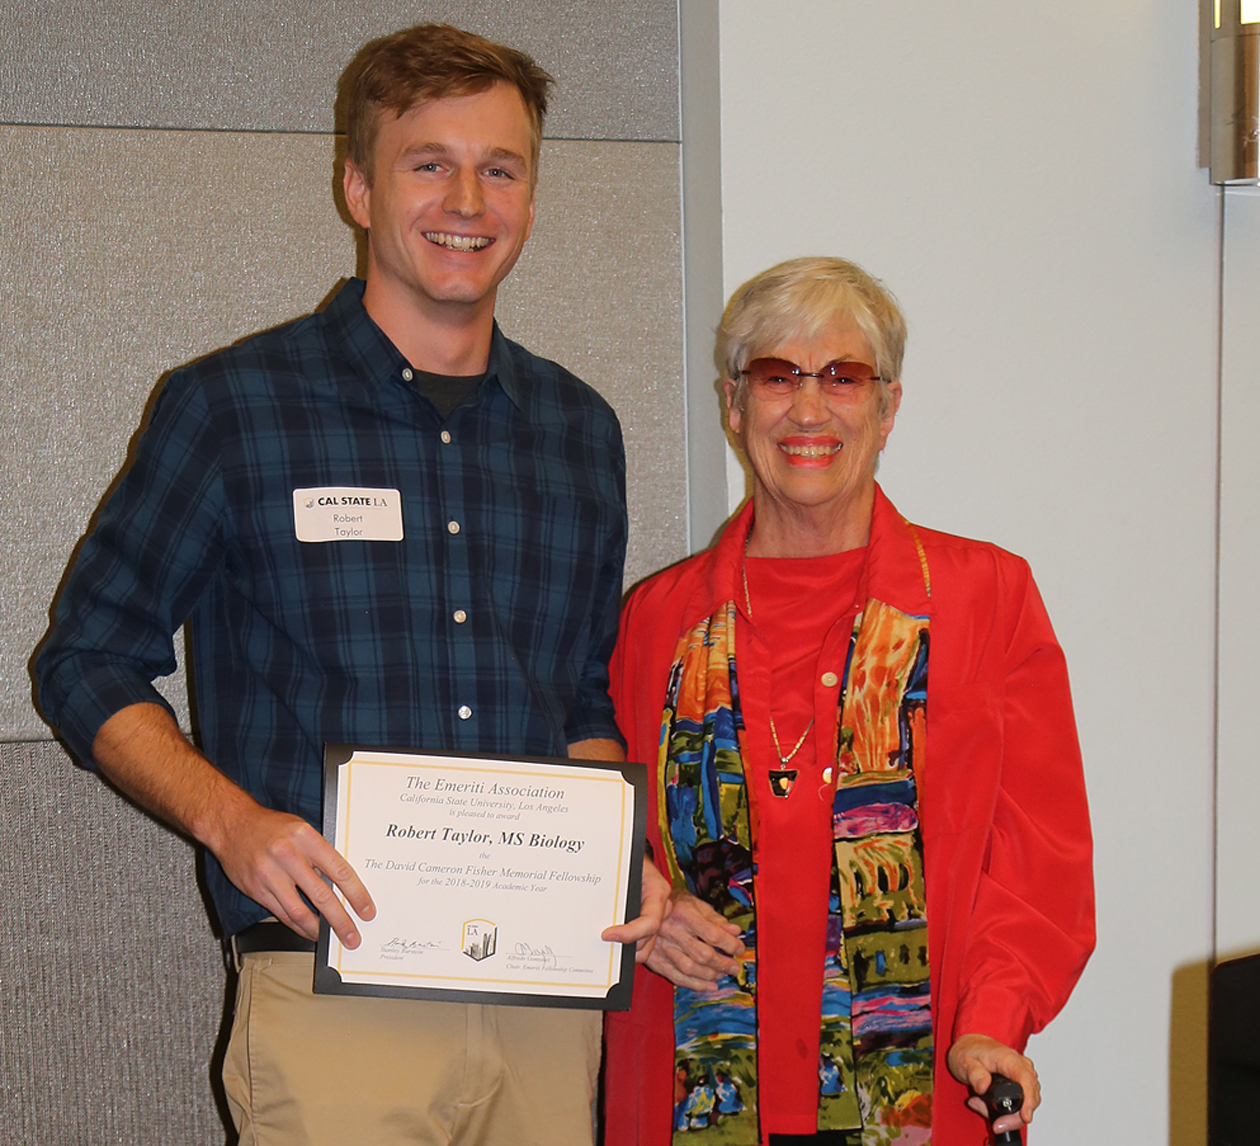 Robert Taylor, student, with professor presenting award